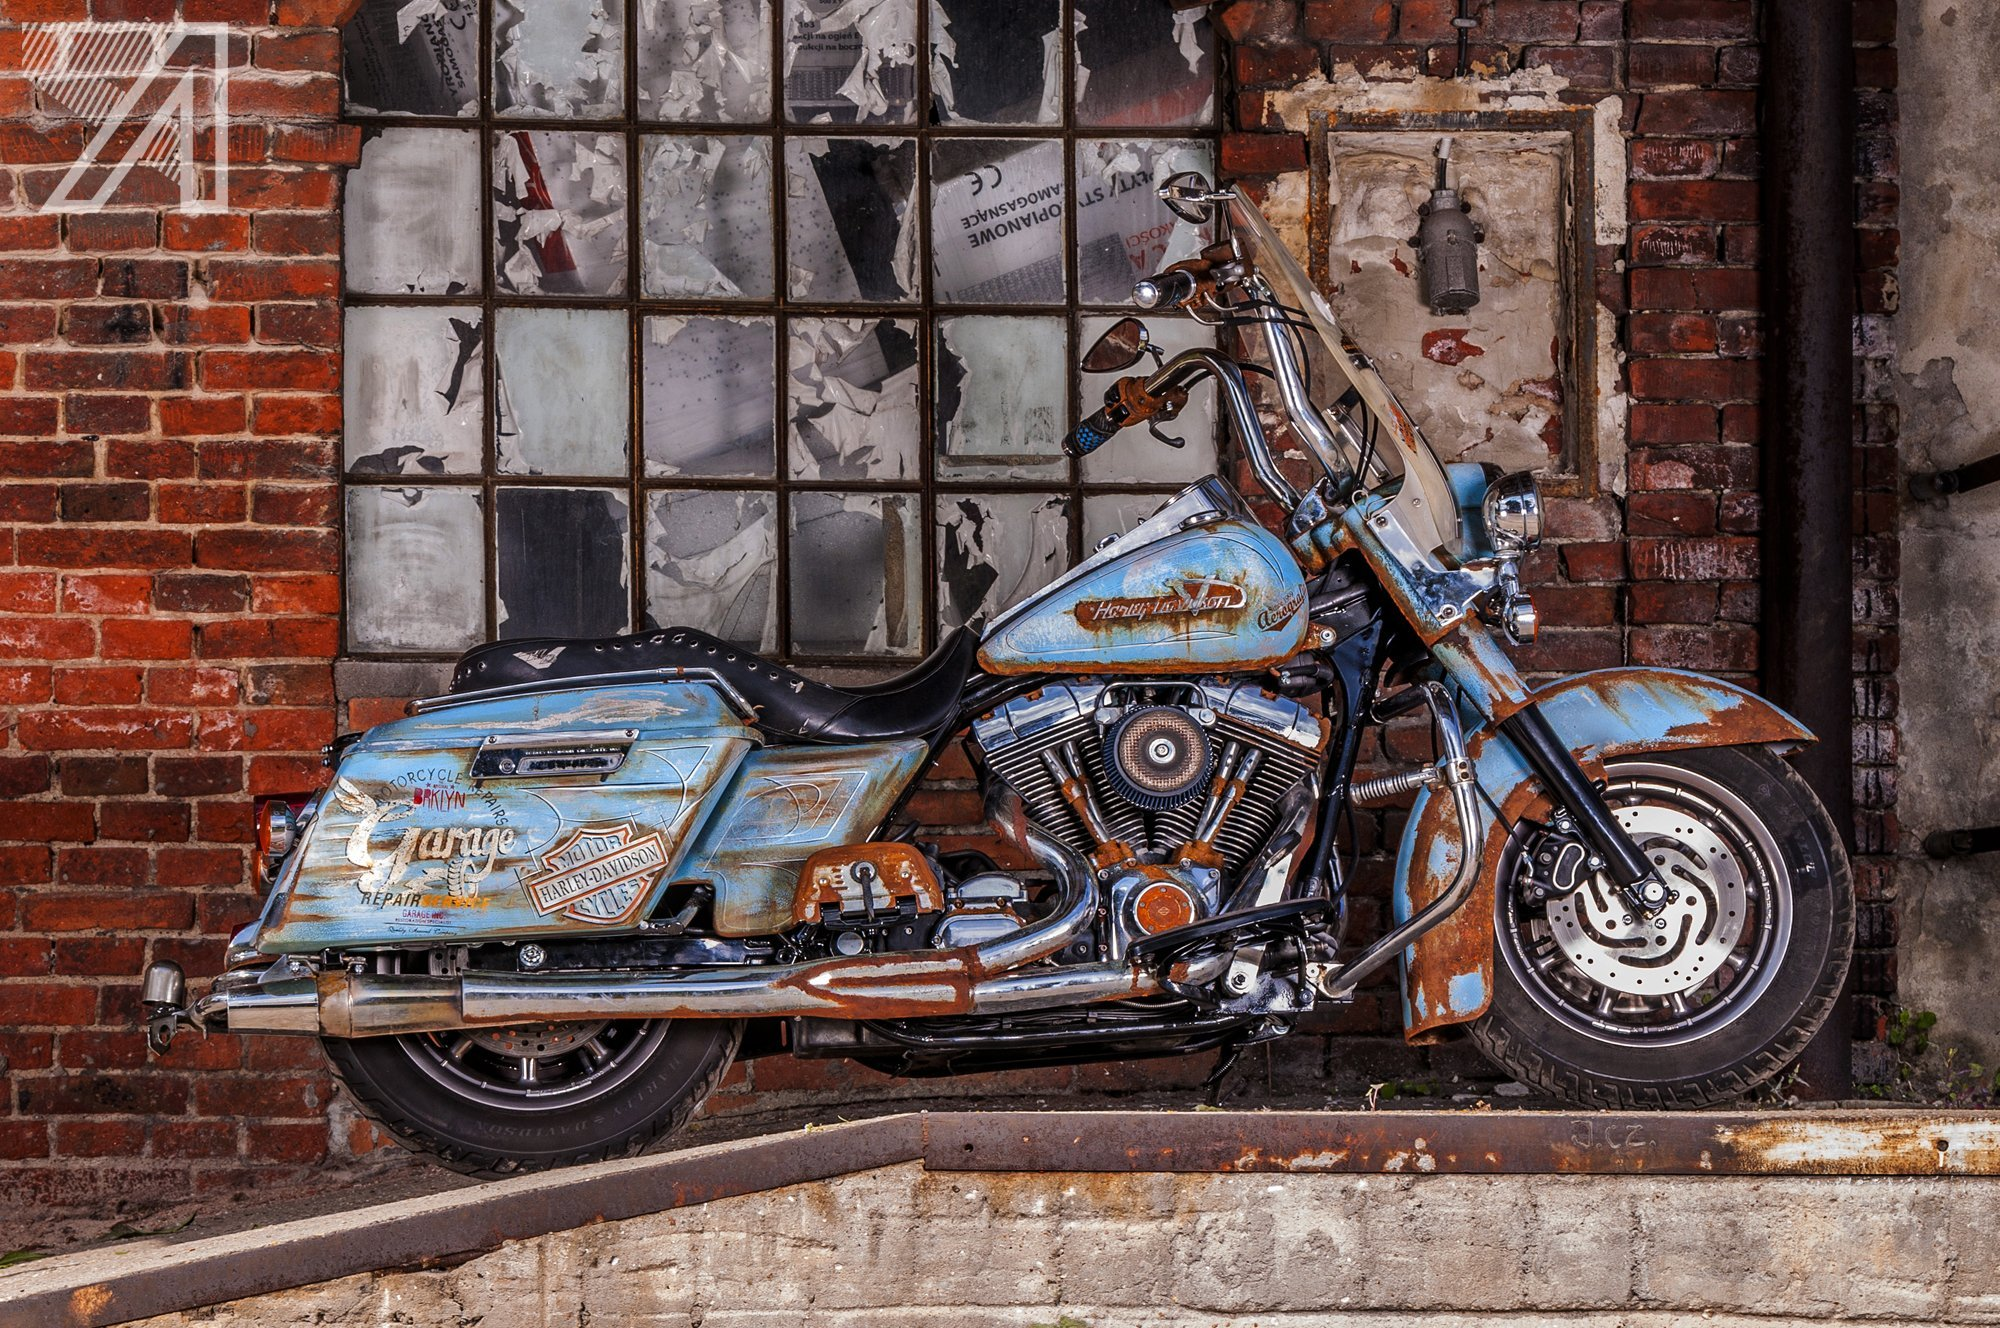 2016-10::1476031659-h-d-road-king-patina-rust.jpg